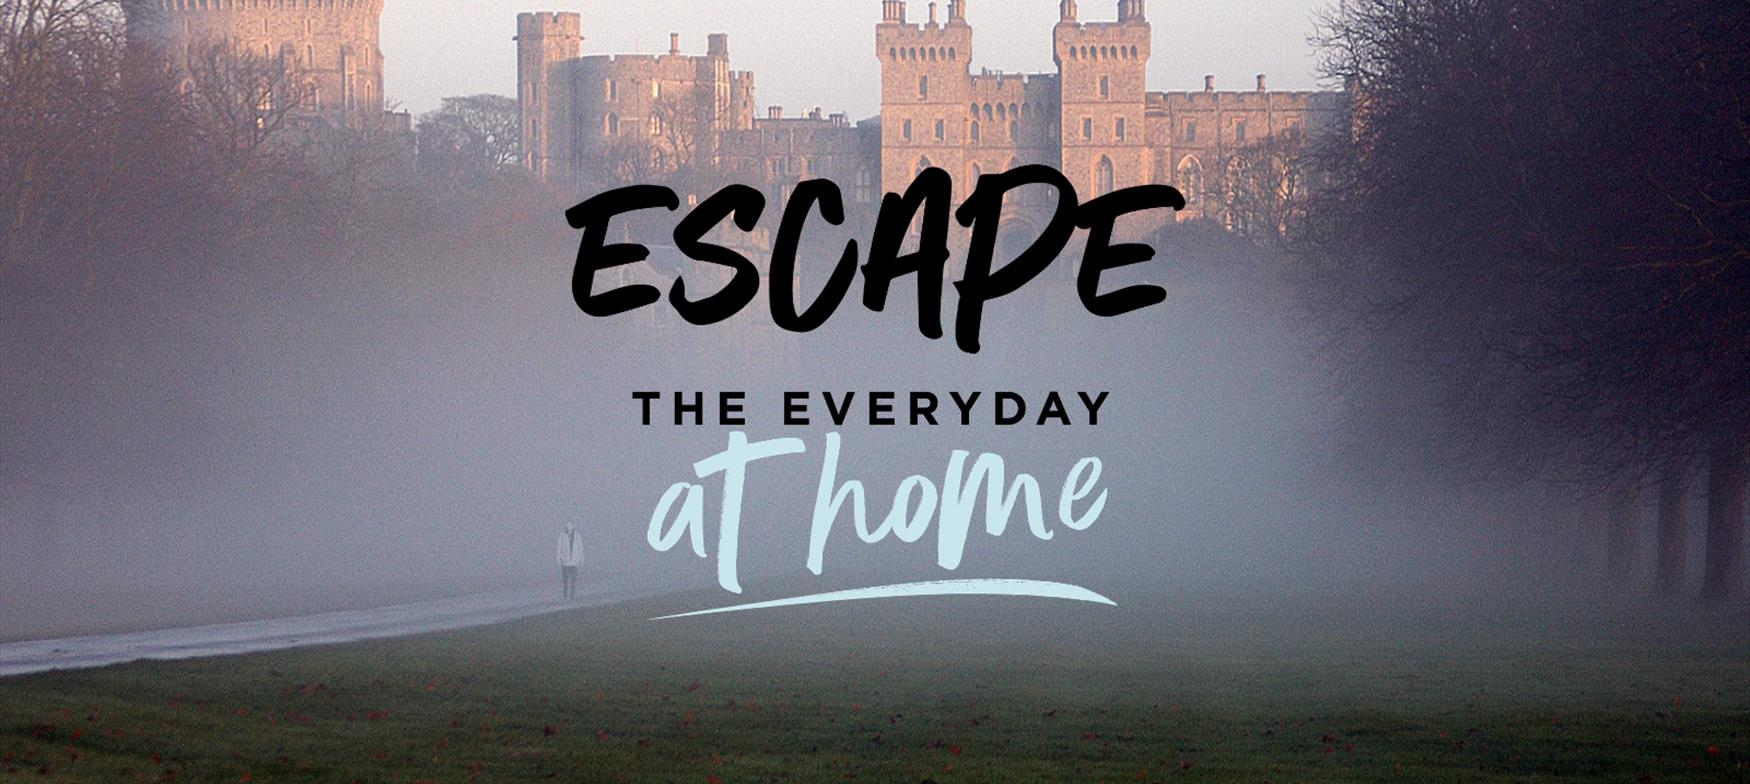 Escape the Everyday at Home